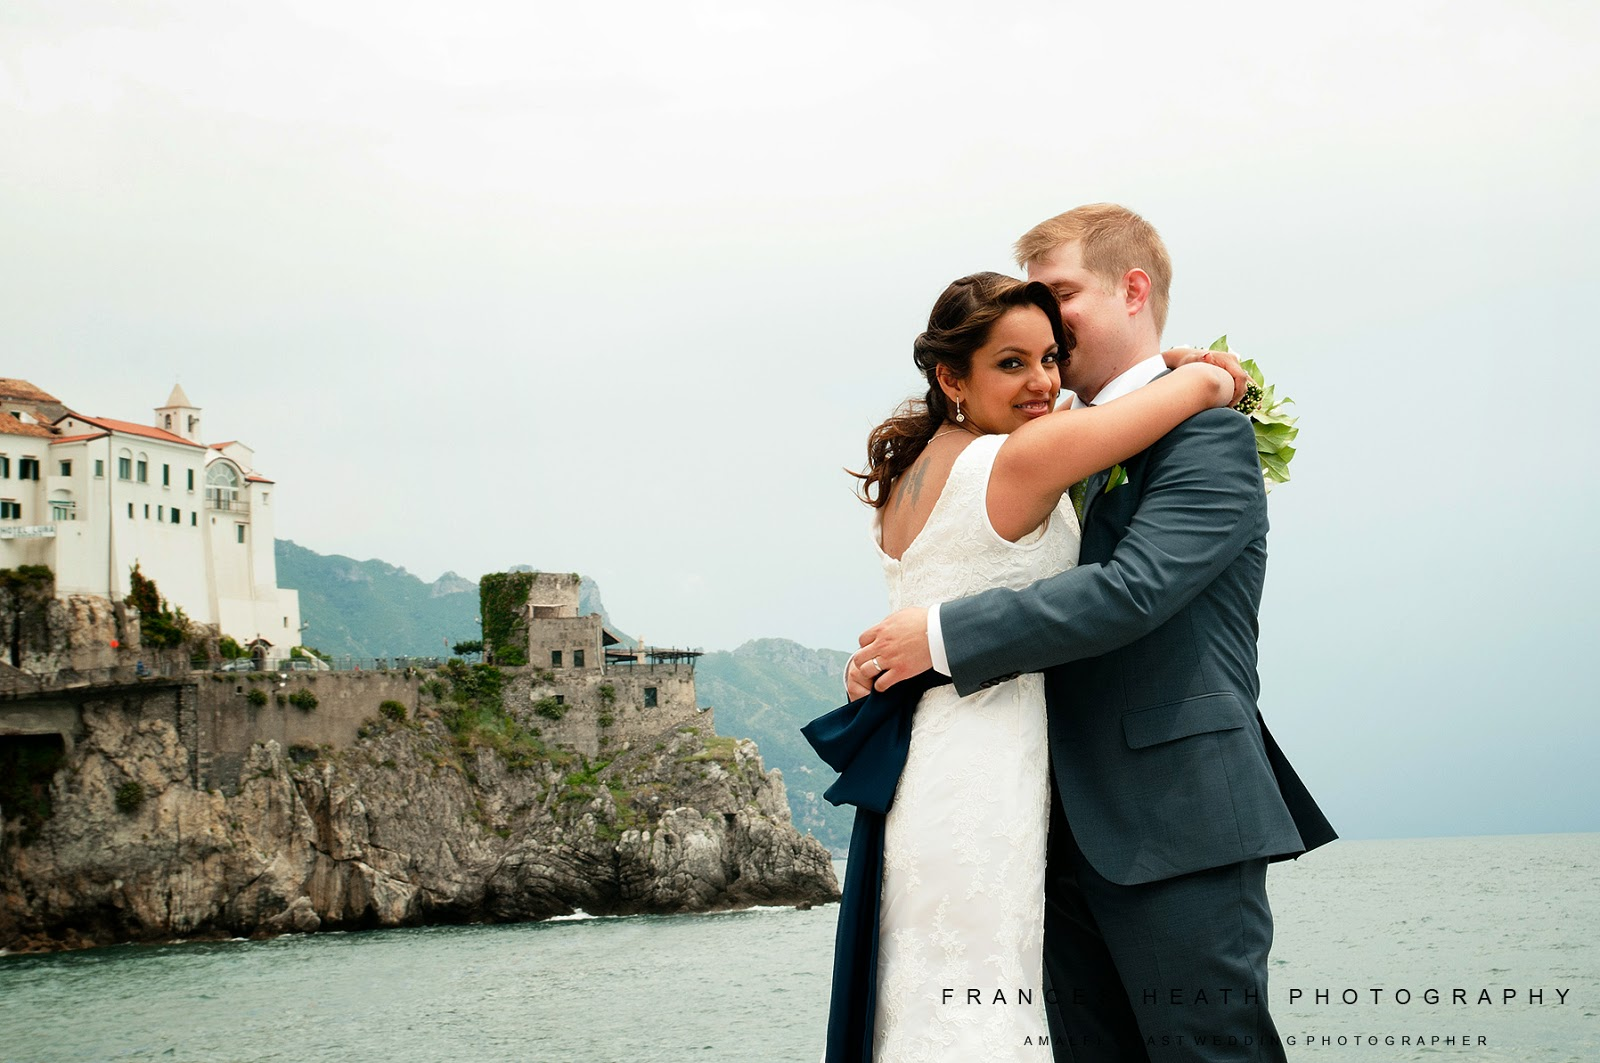 Wedding portrait in Amalfi